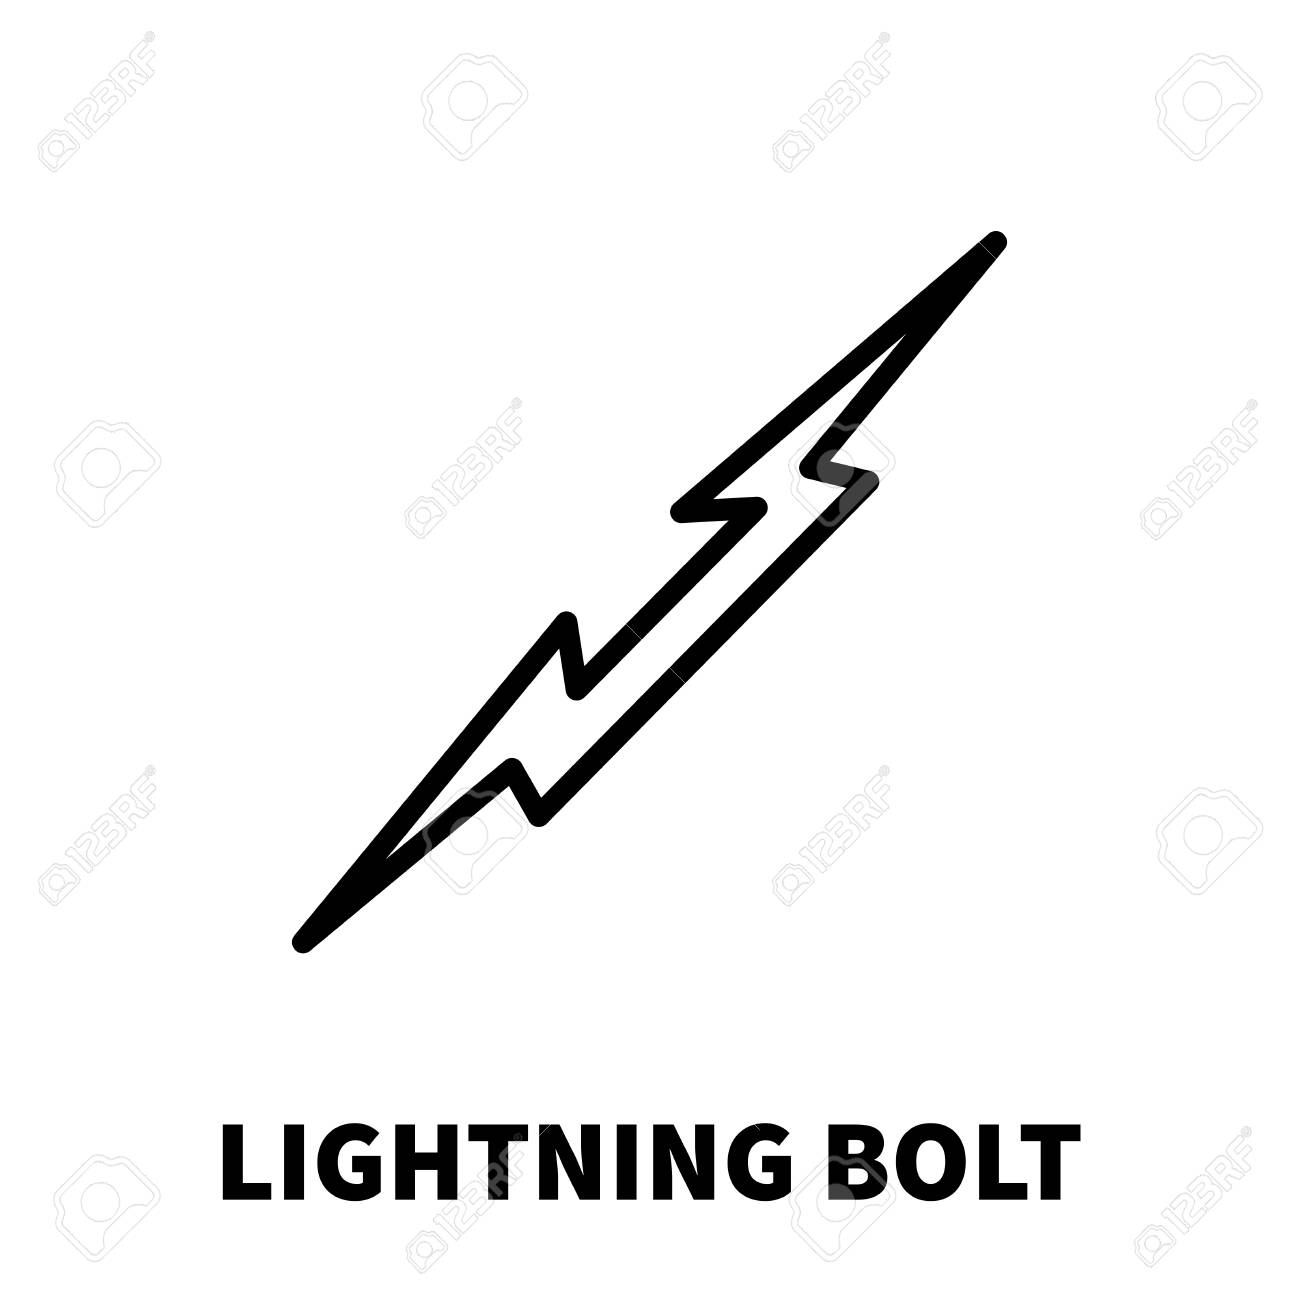 lightning bolt icon or logo in modern line style high quality black outline thunderbolt pictogram